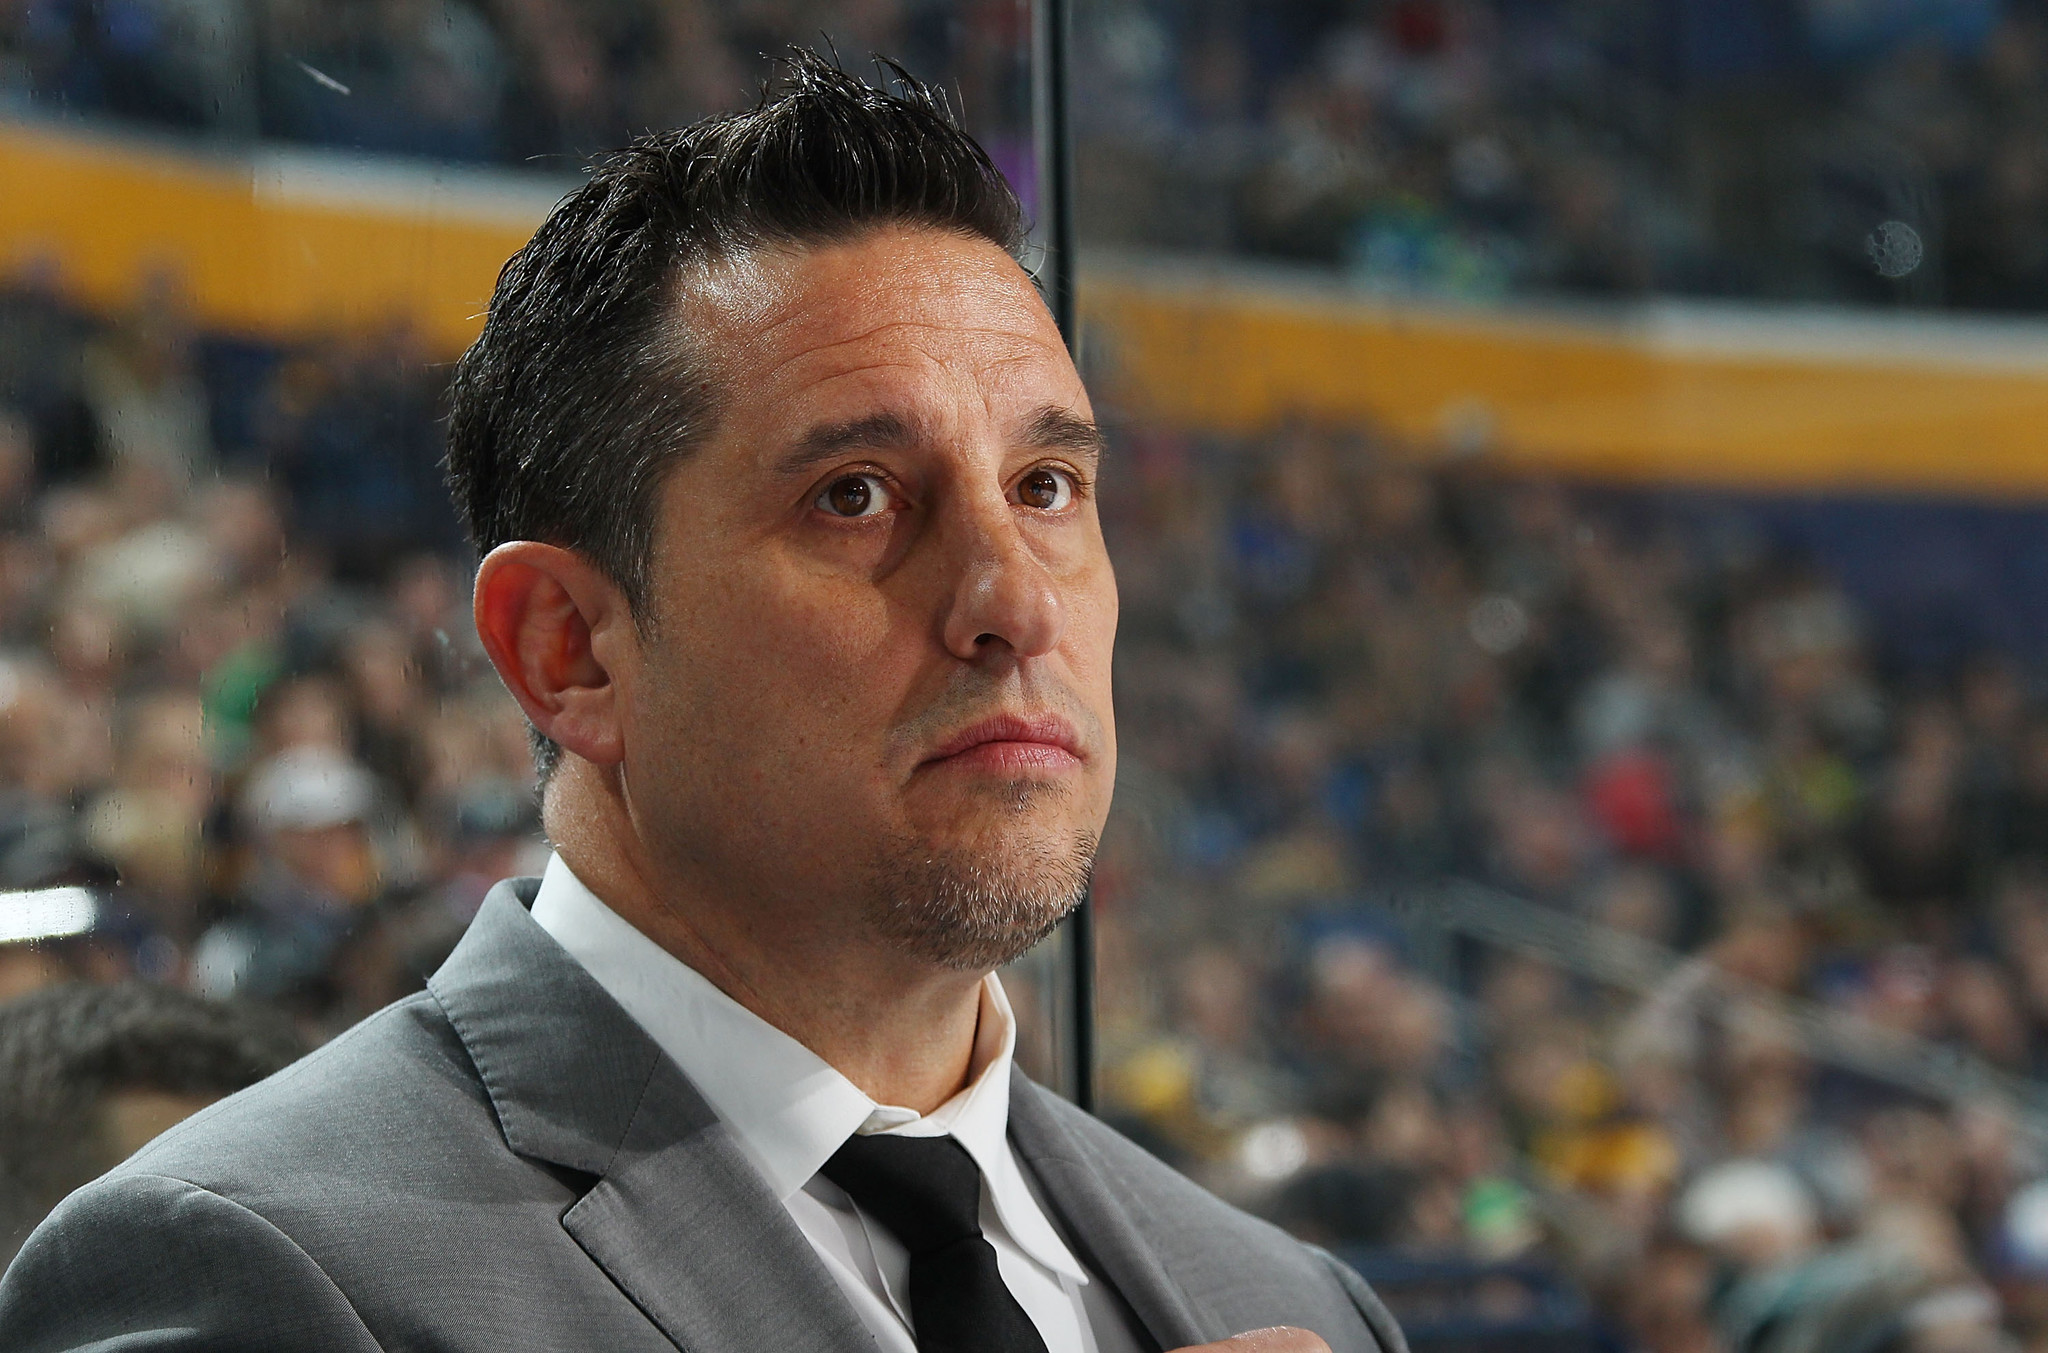 Fl-sp-panthers-coach-boughner-20170620